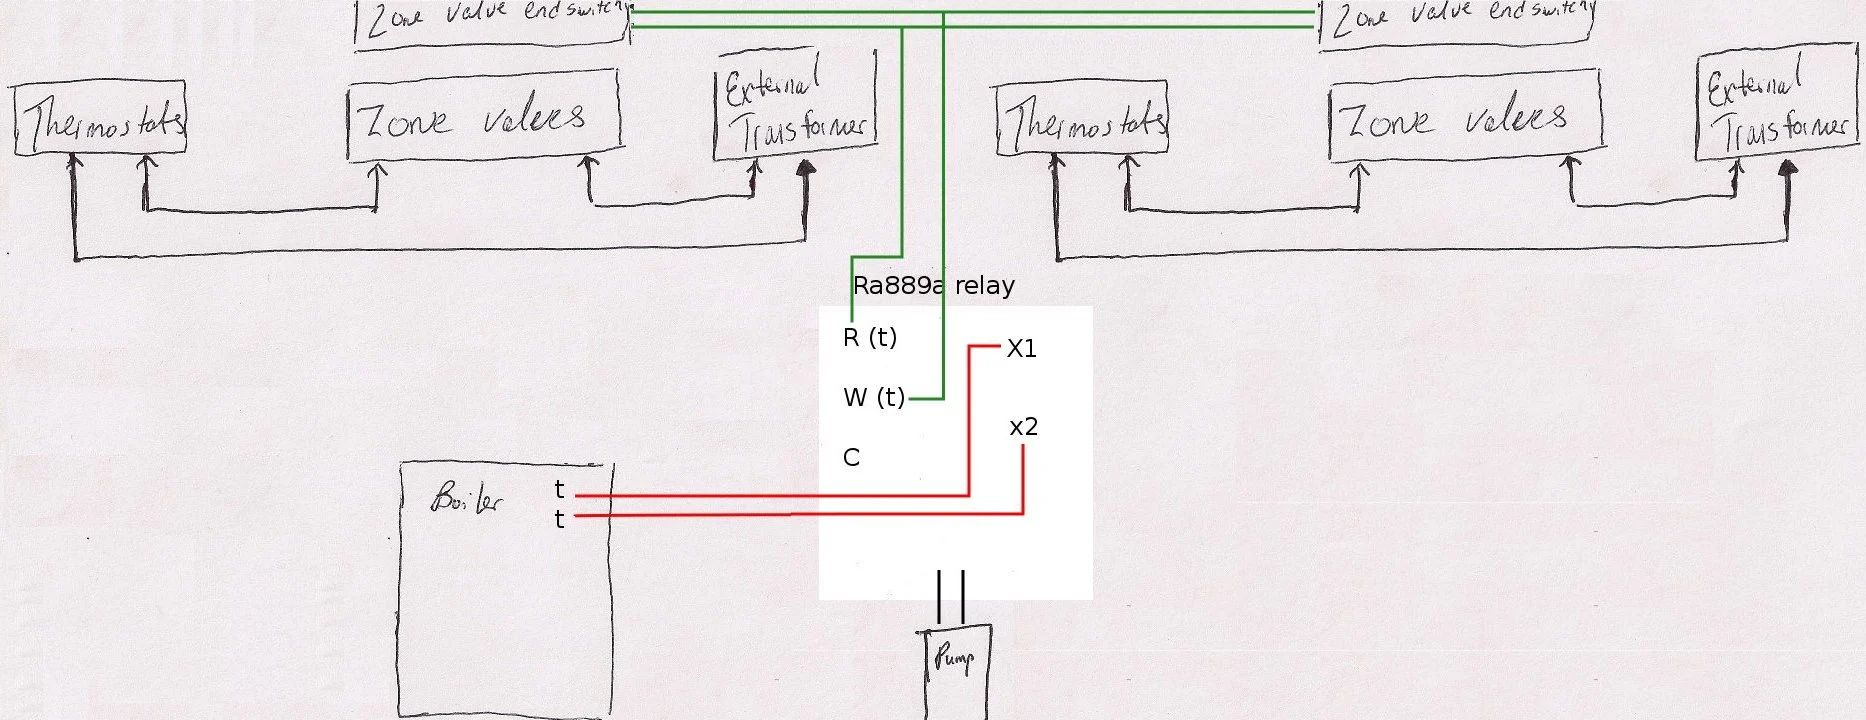 digital honeywell primary control wiring diagram for boiler system